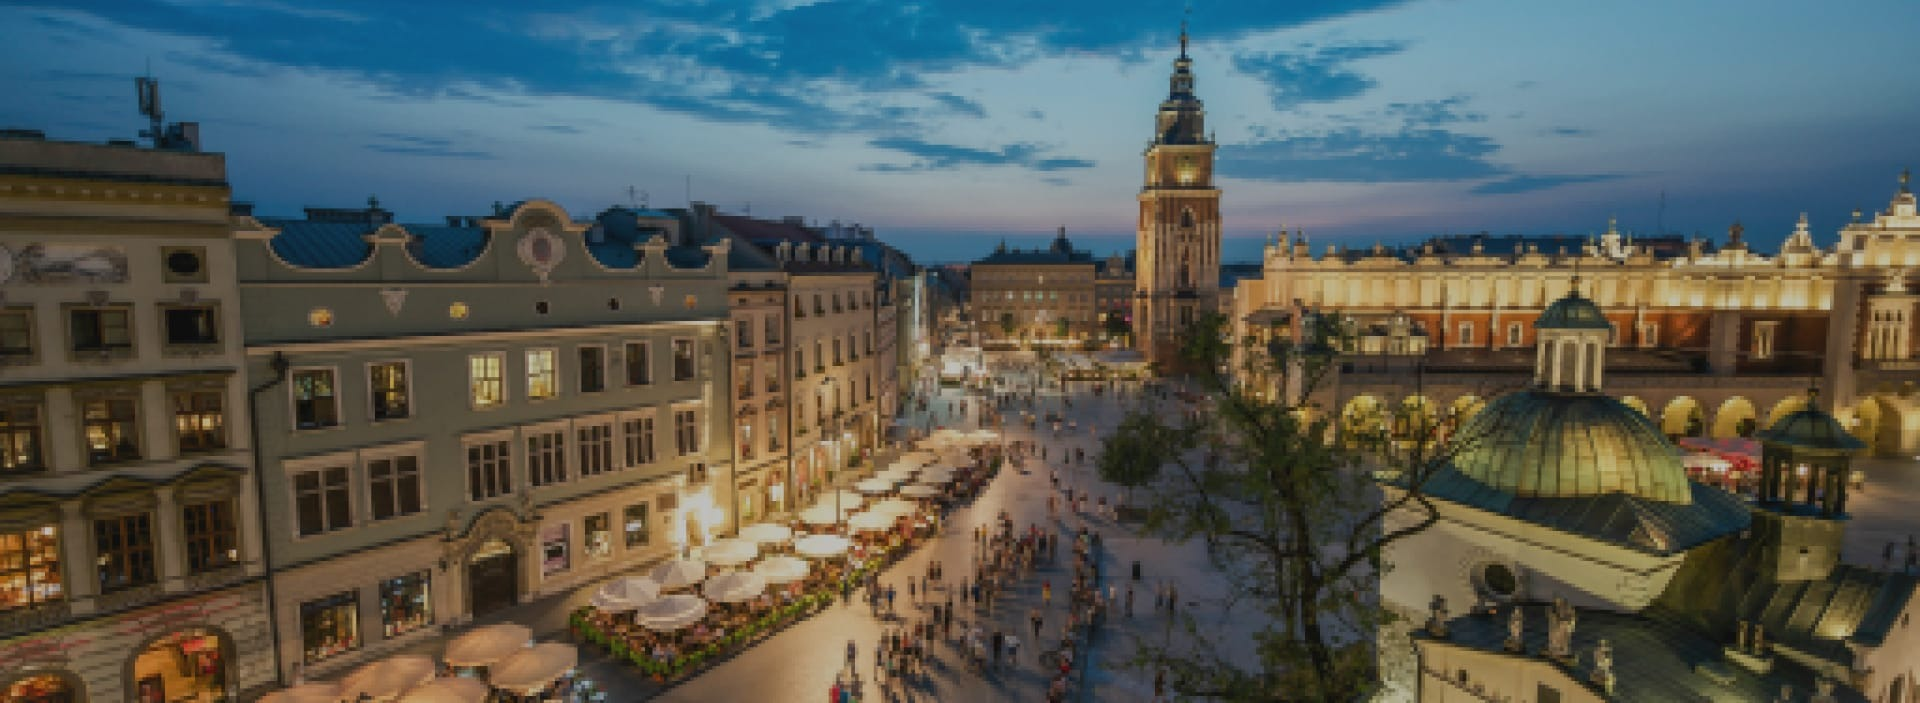 Software engineering in Poland: All you need to know